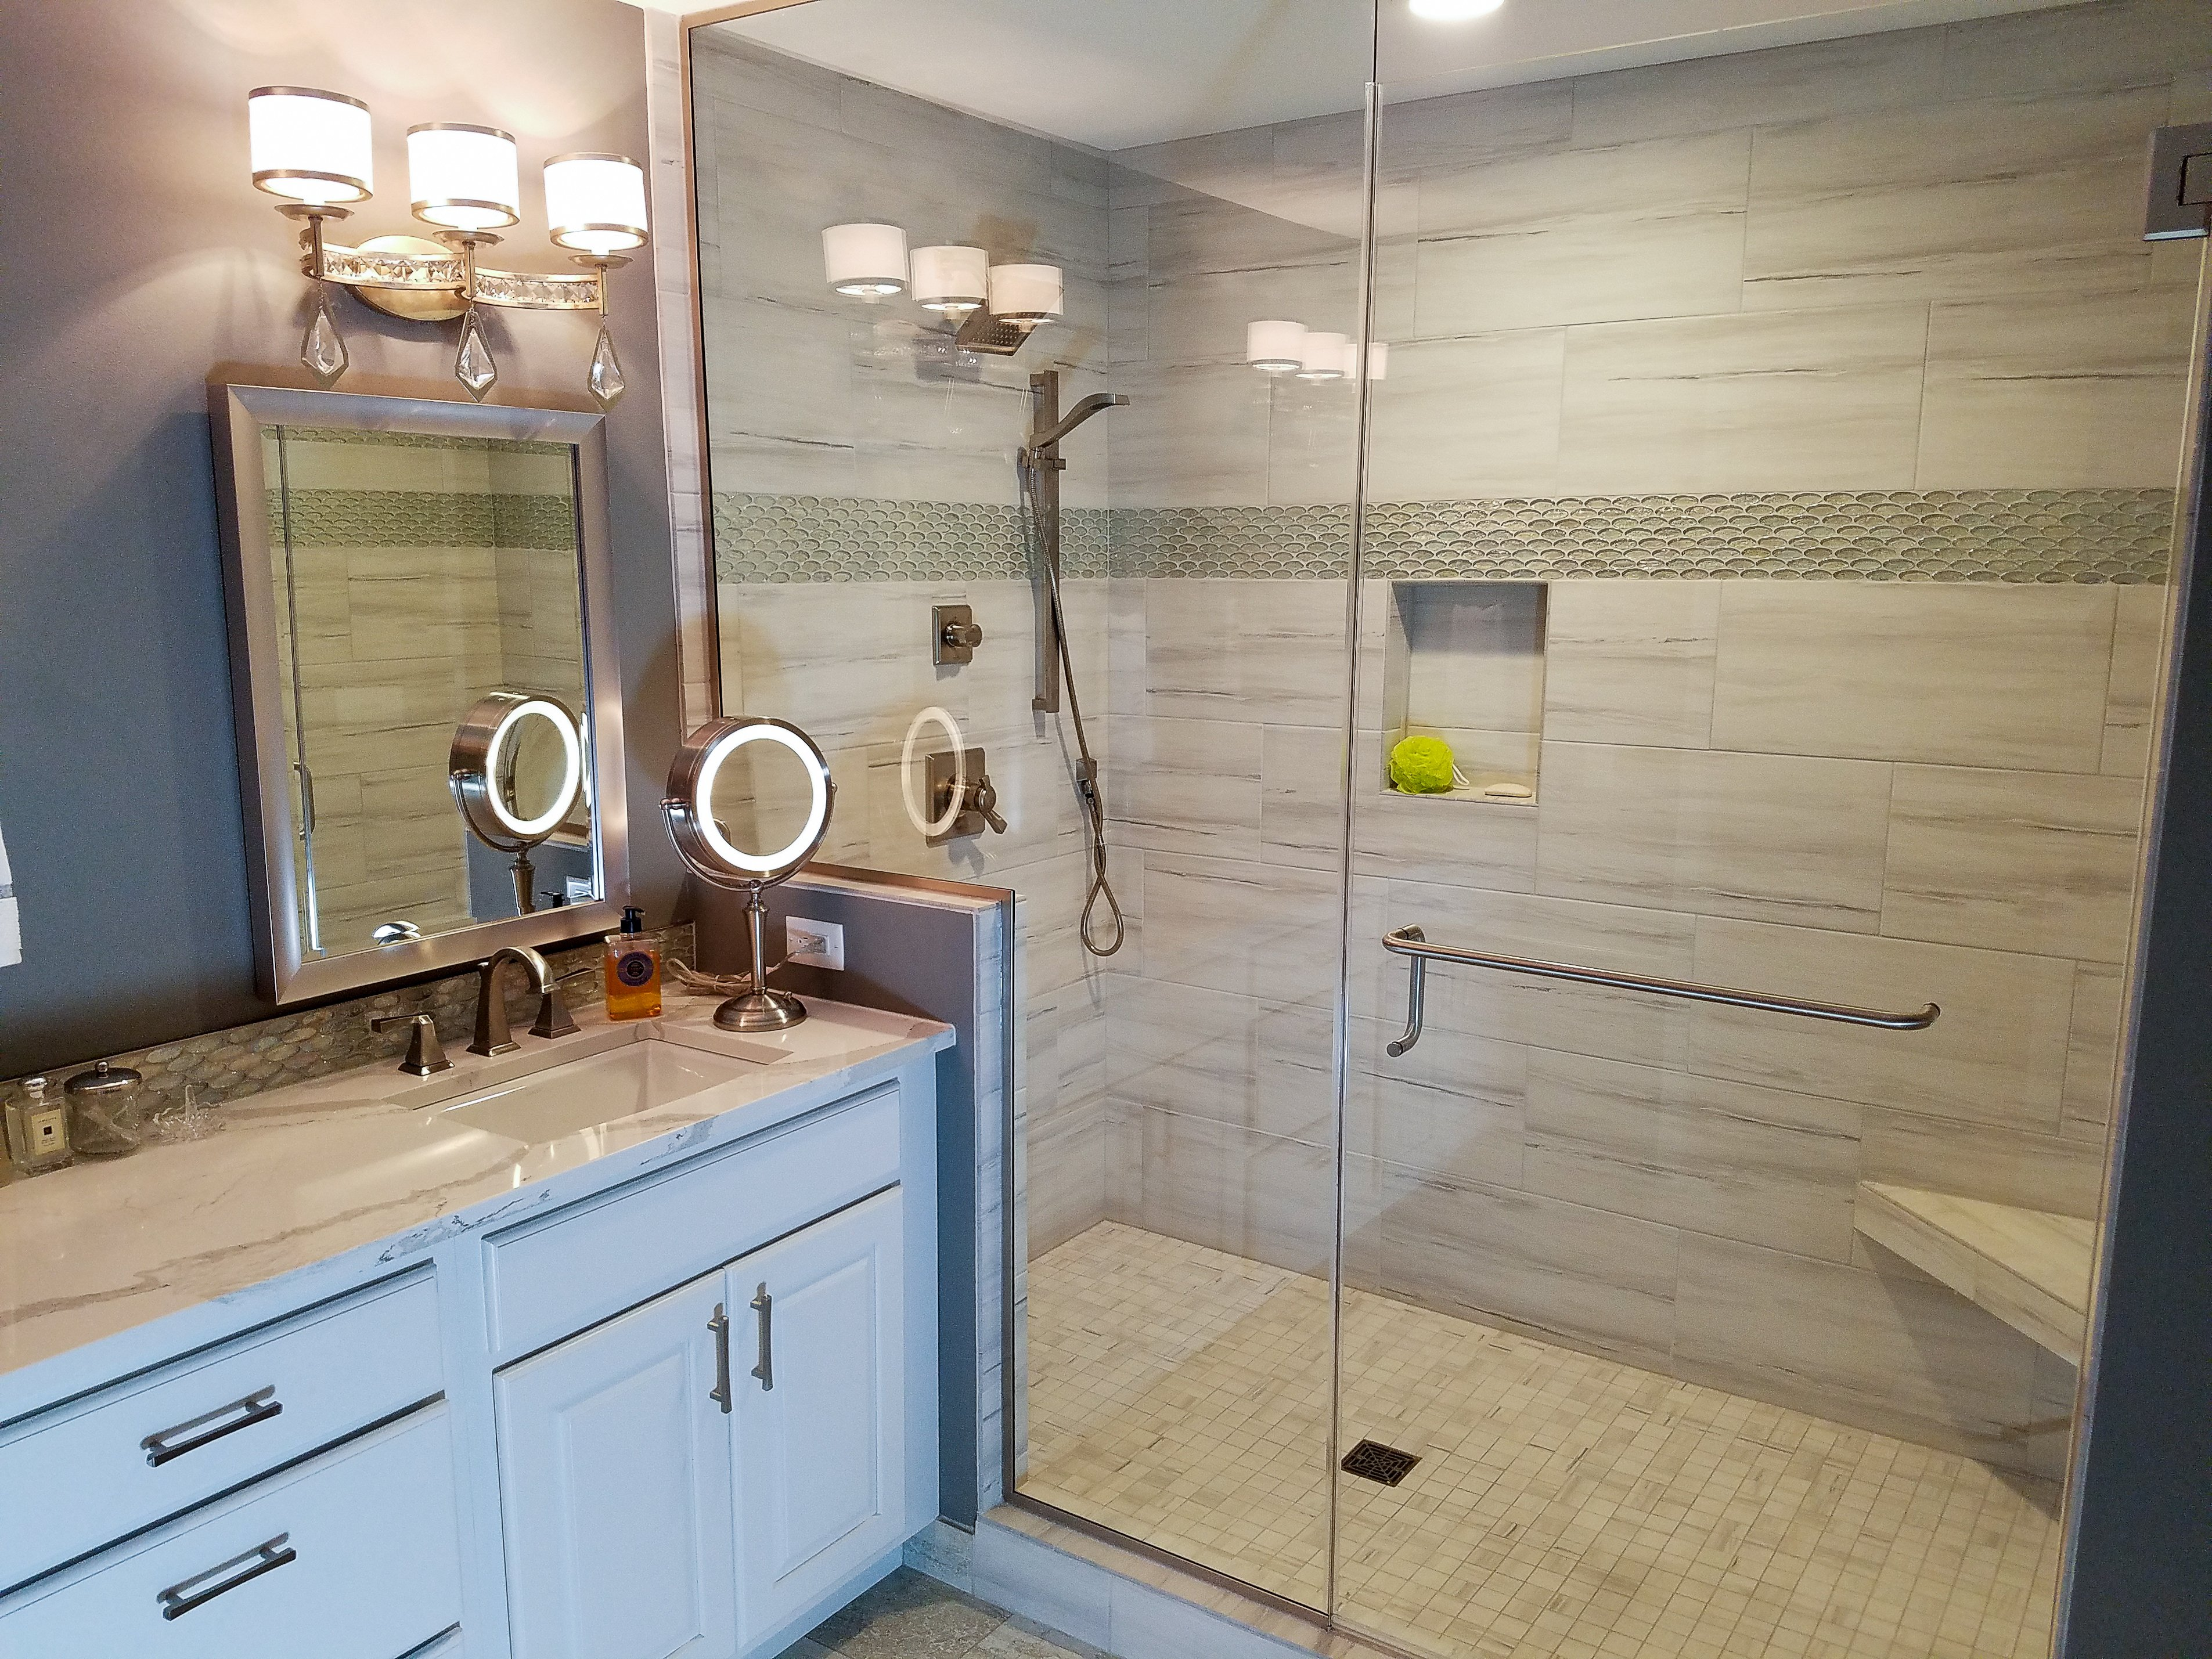 Bathroom Design, large walk-in shower, shower pony wall, shower with a curb, glass shower panel and door,